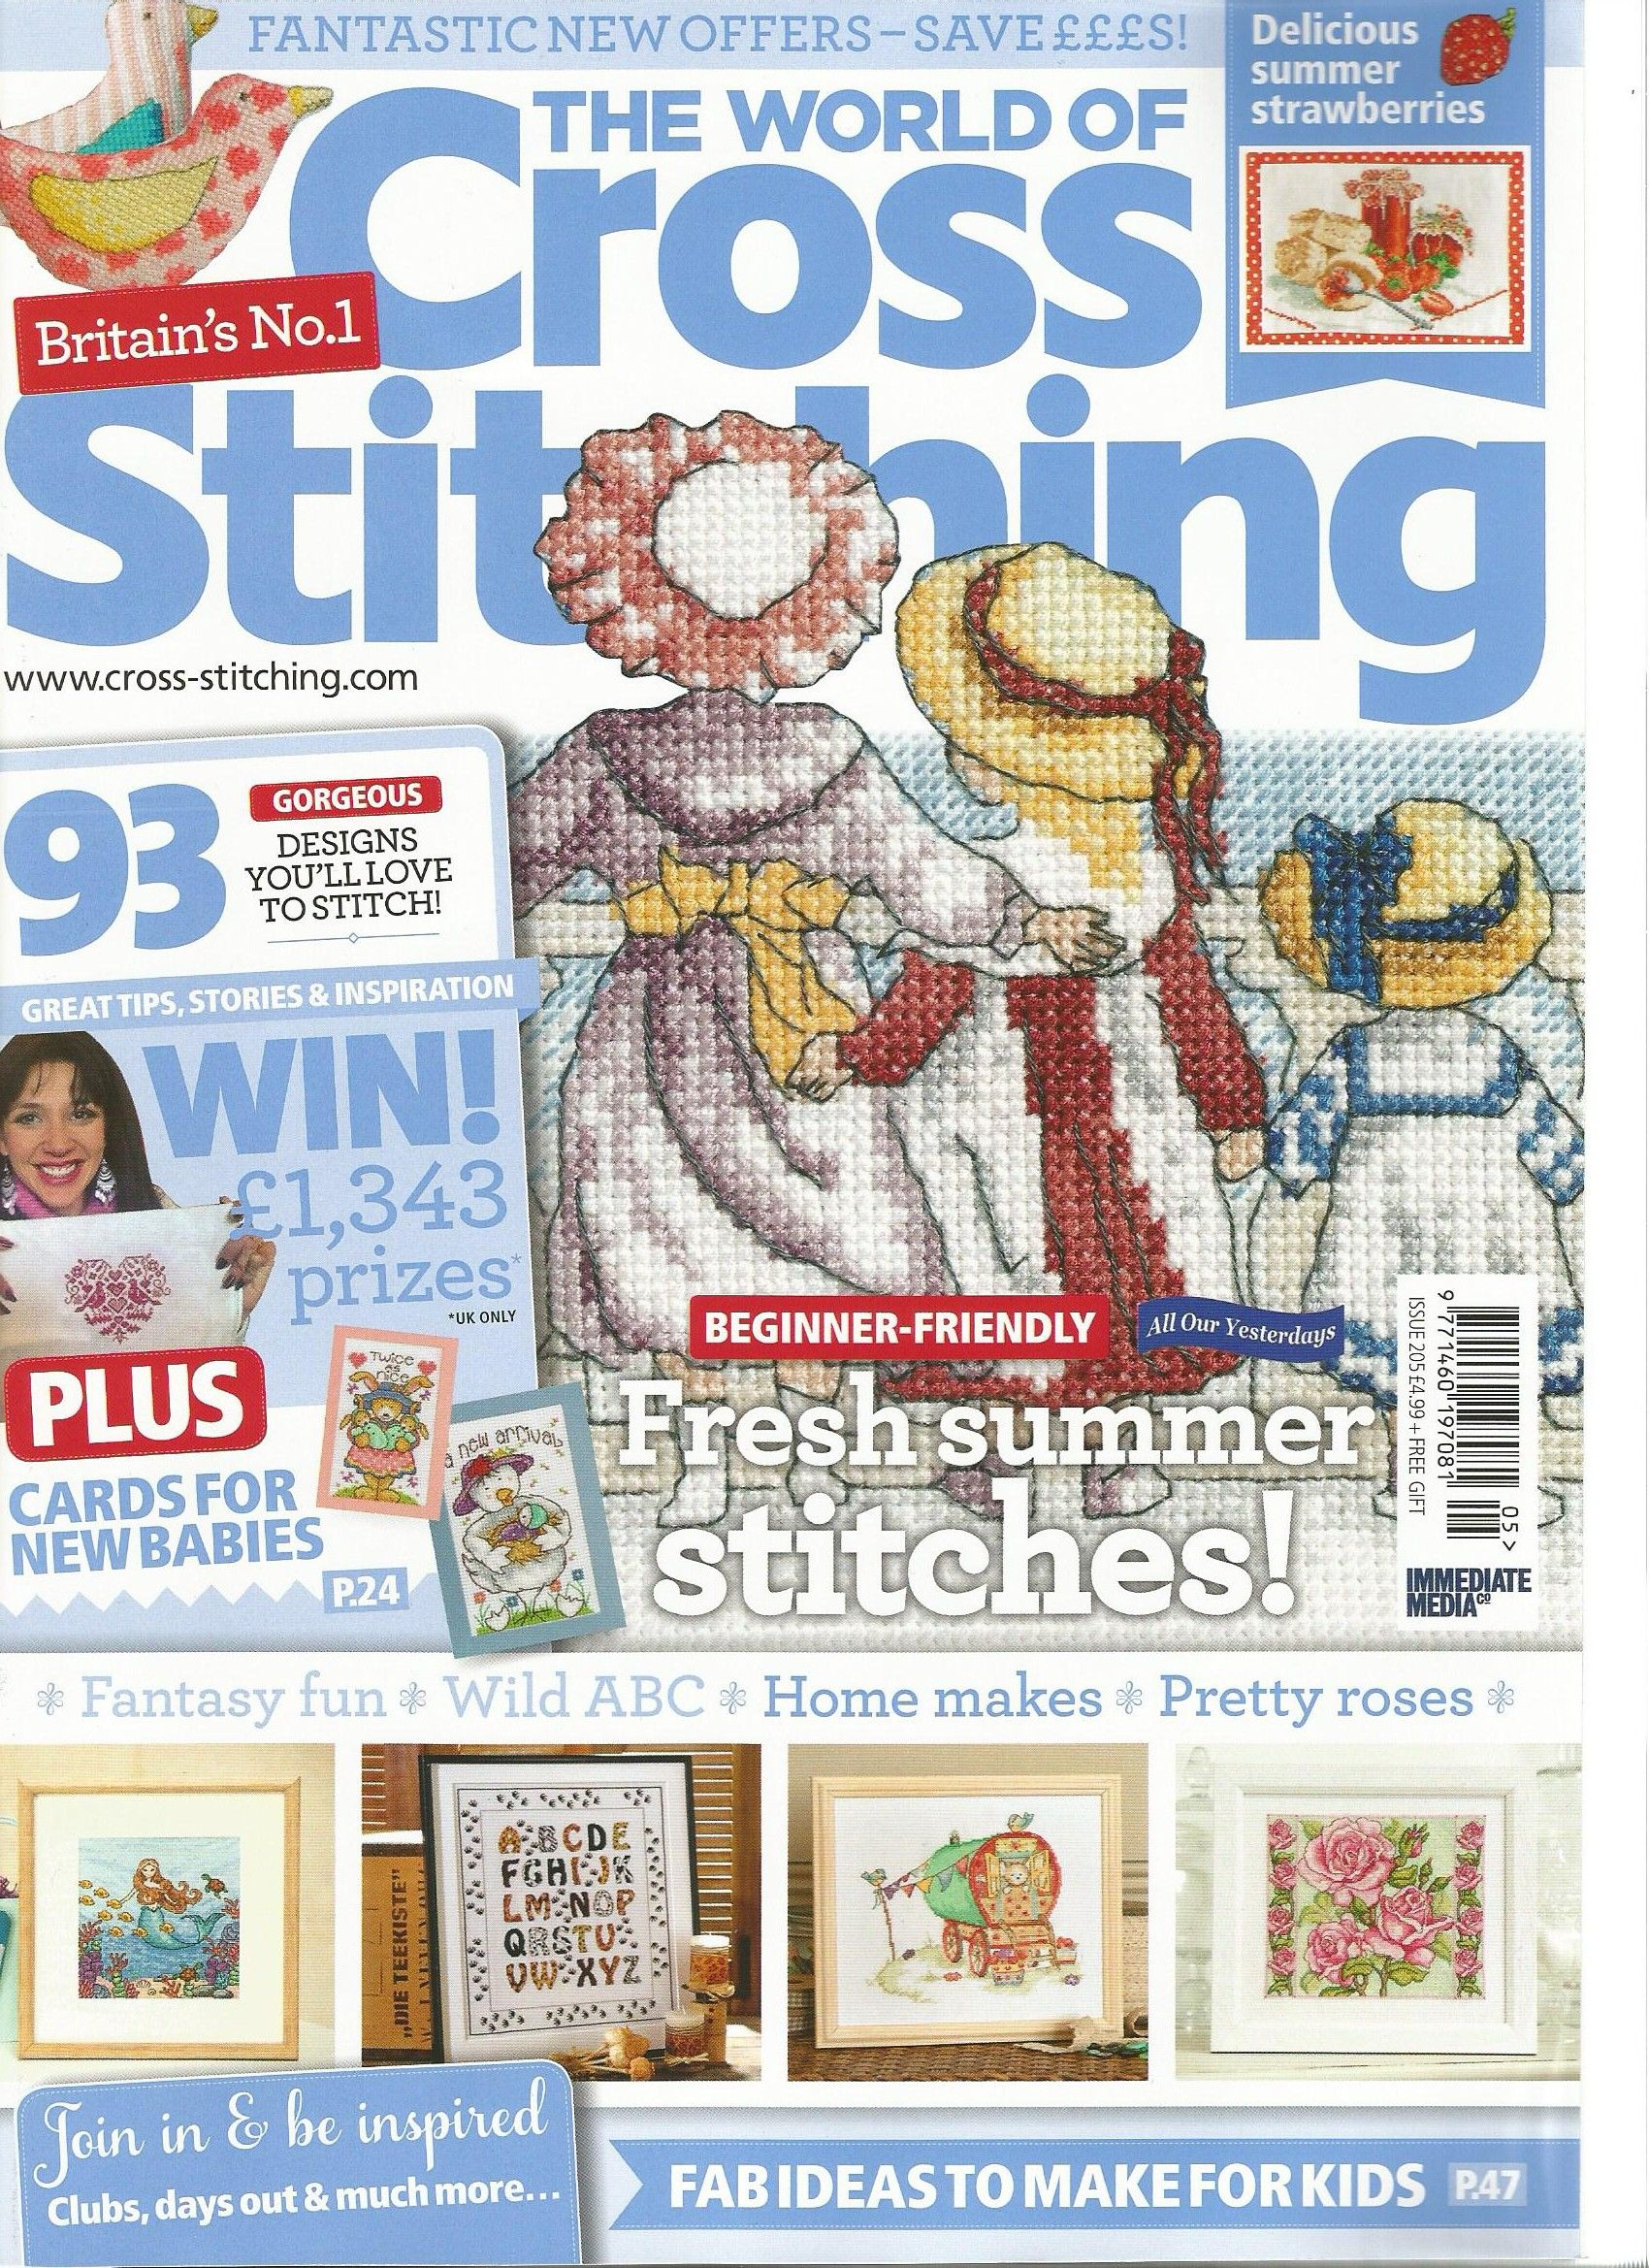 The World of Cross Stitching - Issue 205 | libros | Pinterest ...